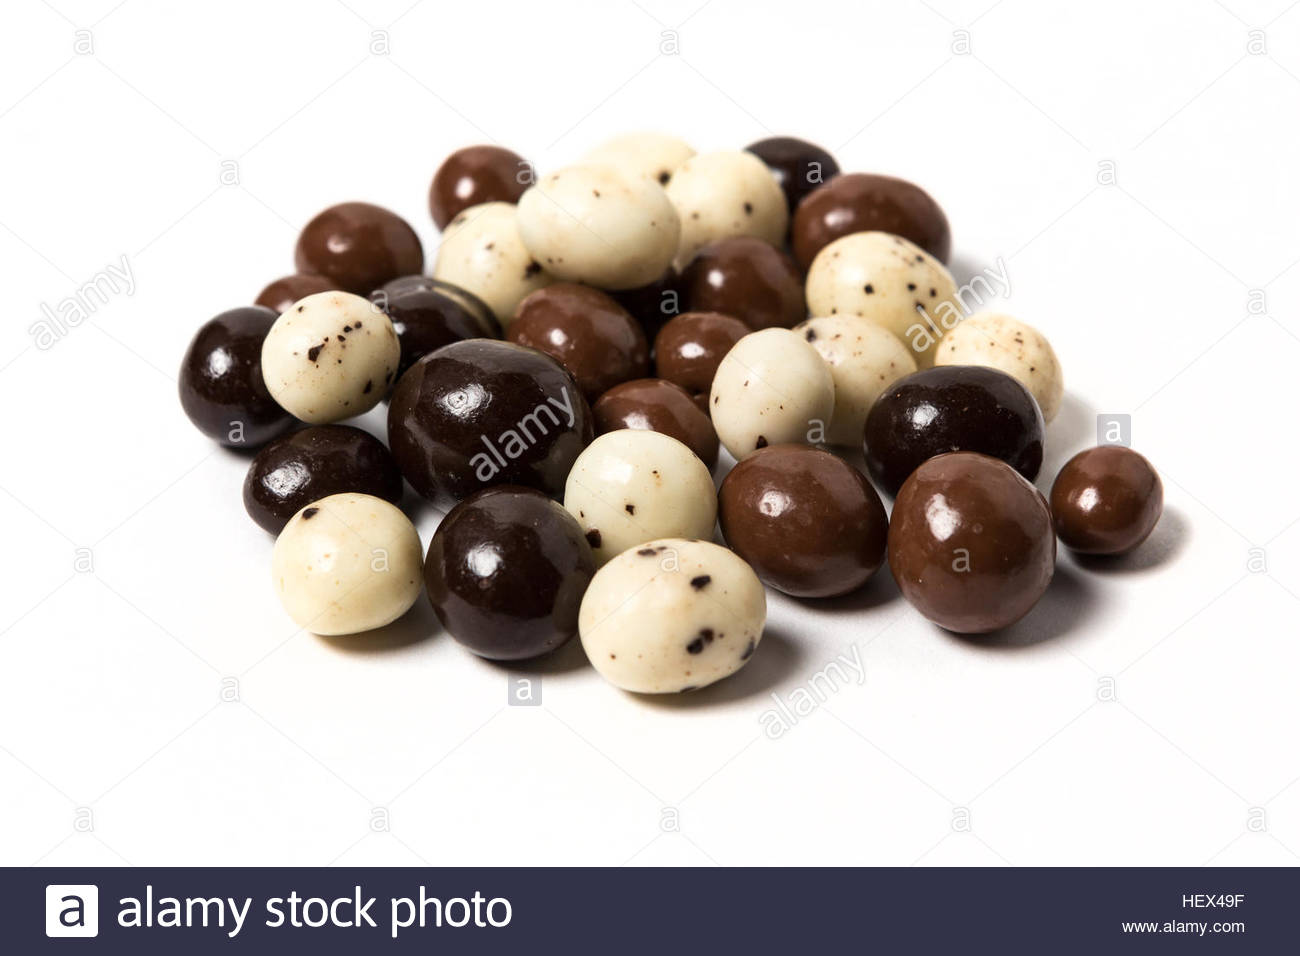 Chocolate expresso beans isolated on white background Stock Photo 1300x956